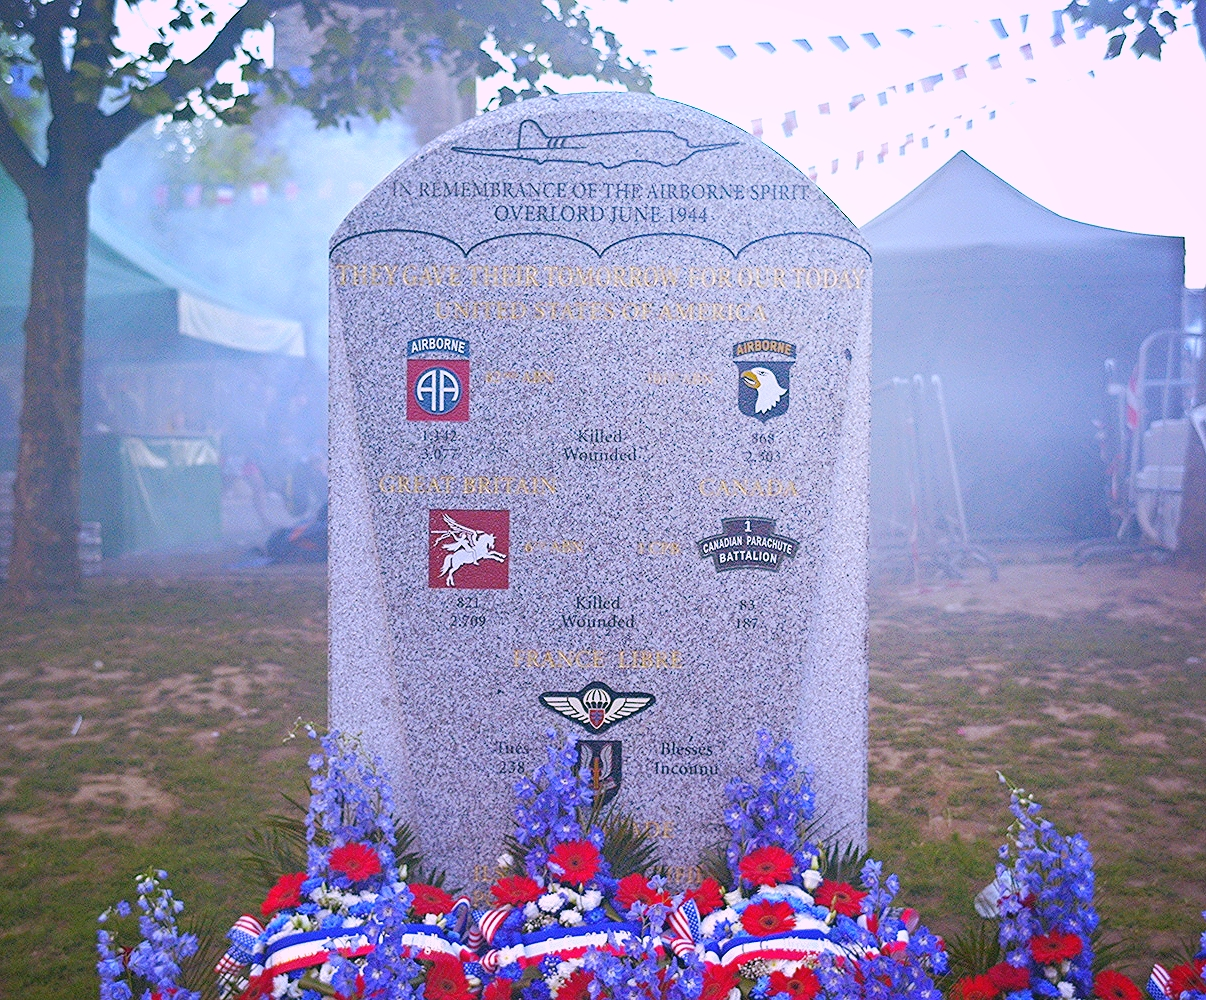 The Monument to the Allied Airborne which liberated the town of St. Mere Eglise on June 6th, 1944.